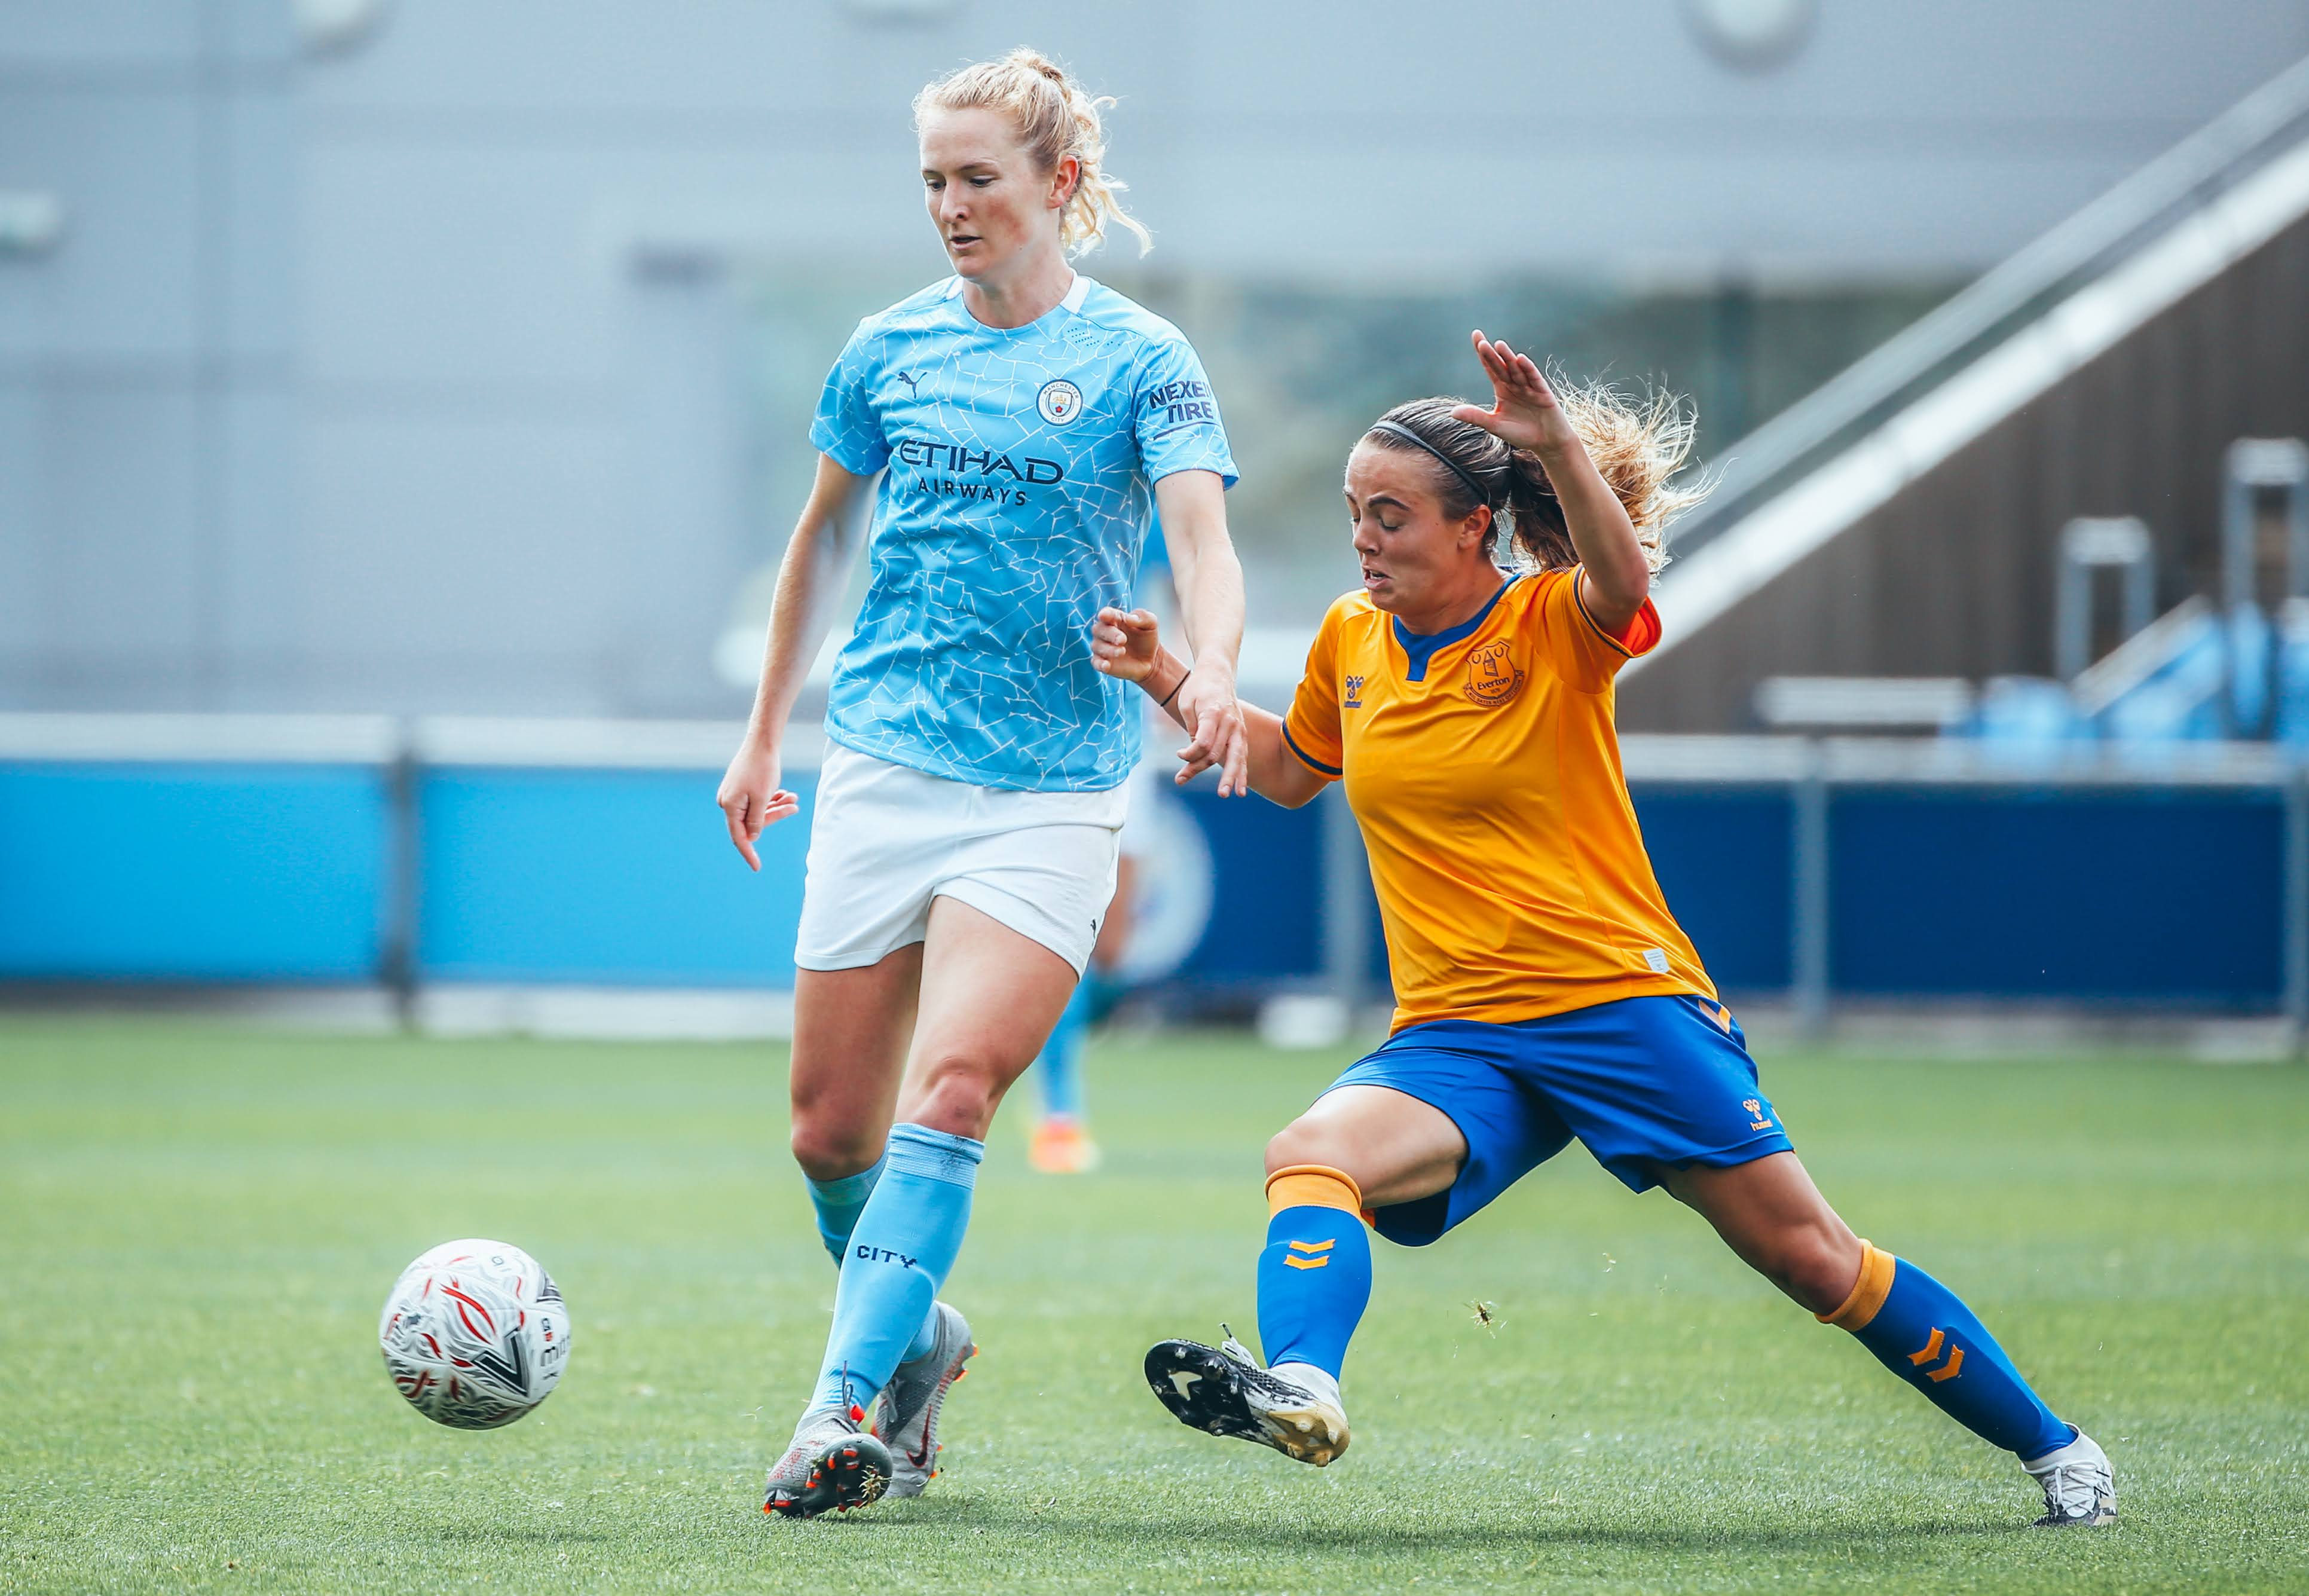 Dream start for Mewis as City demolish Toffees